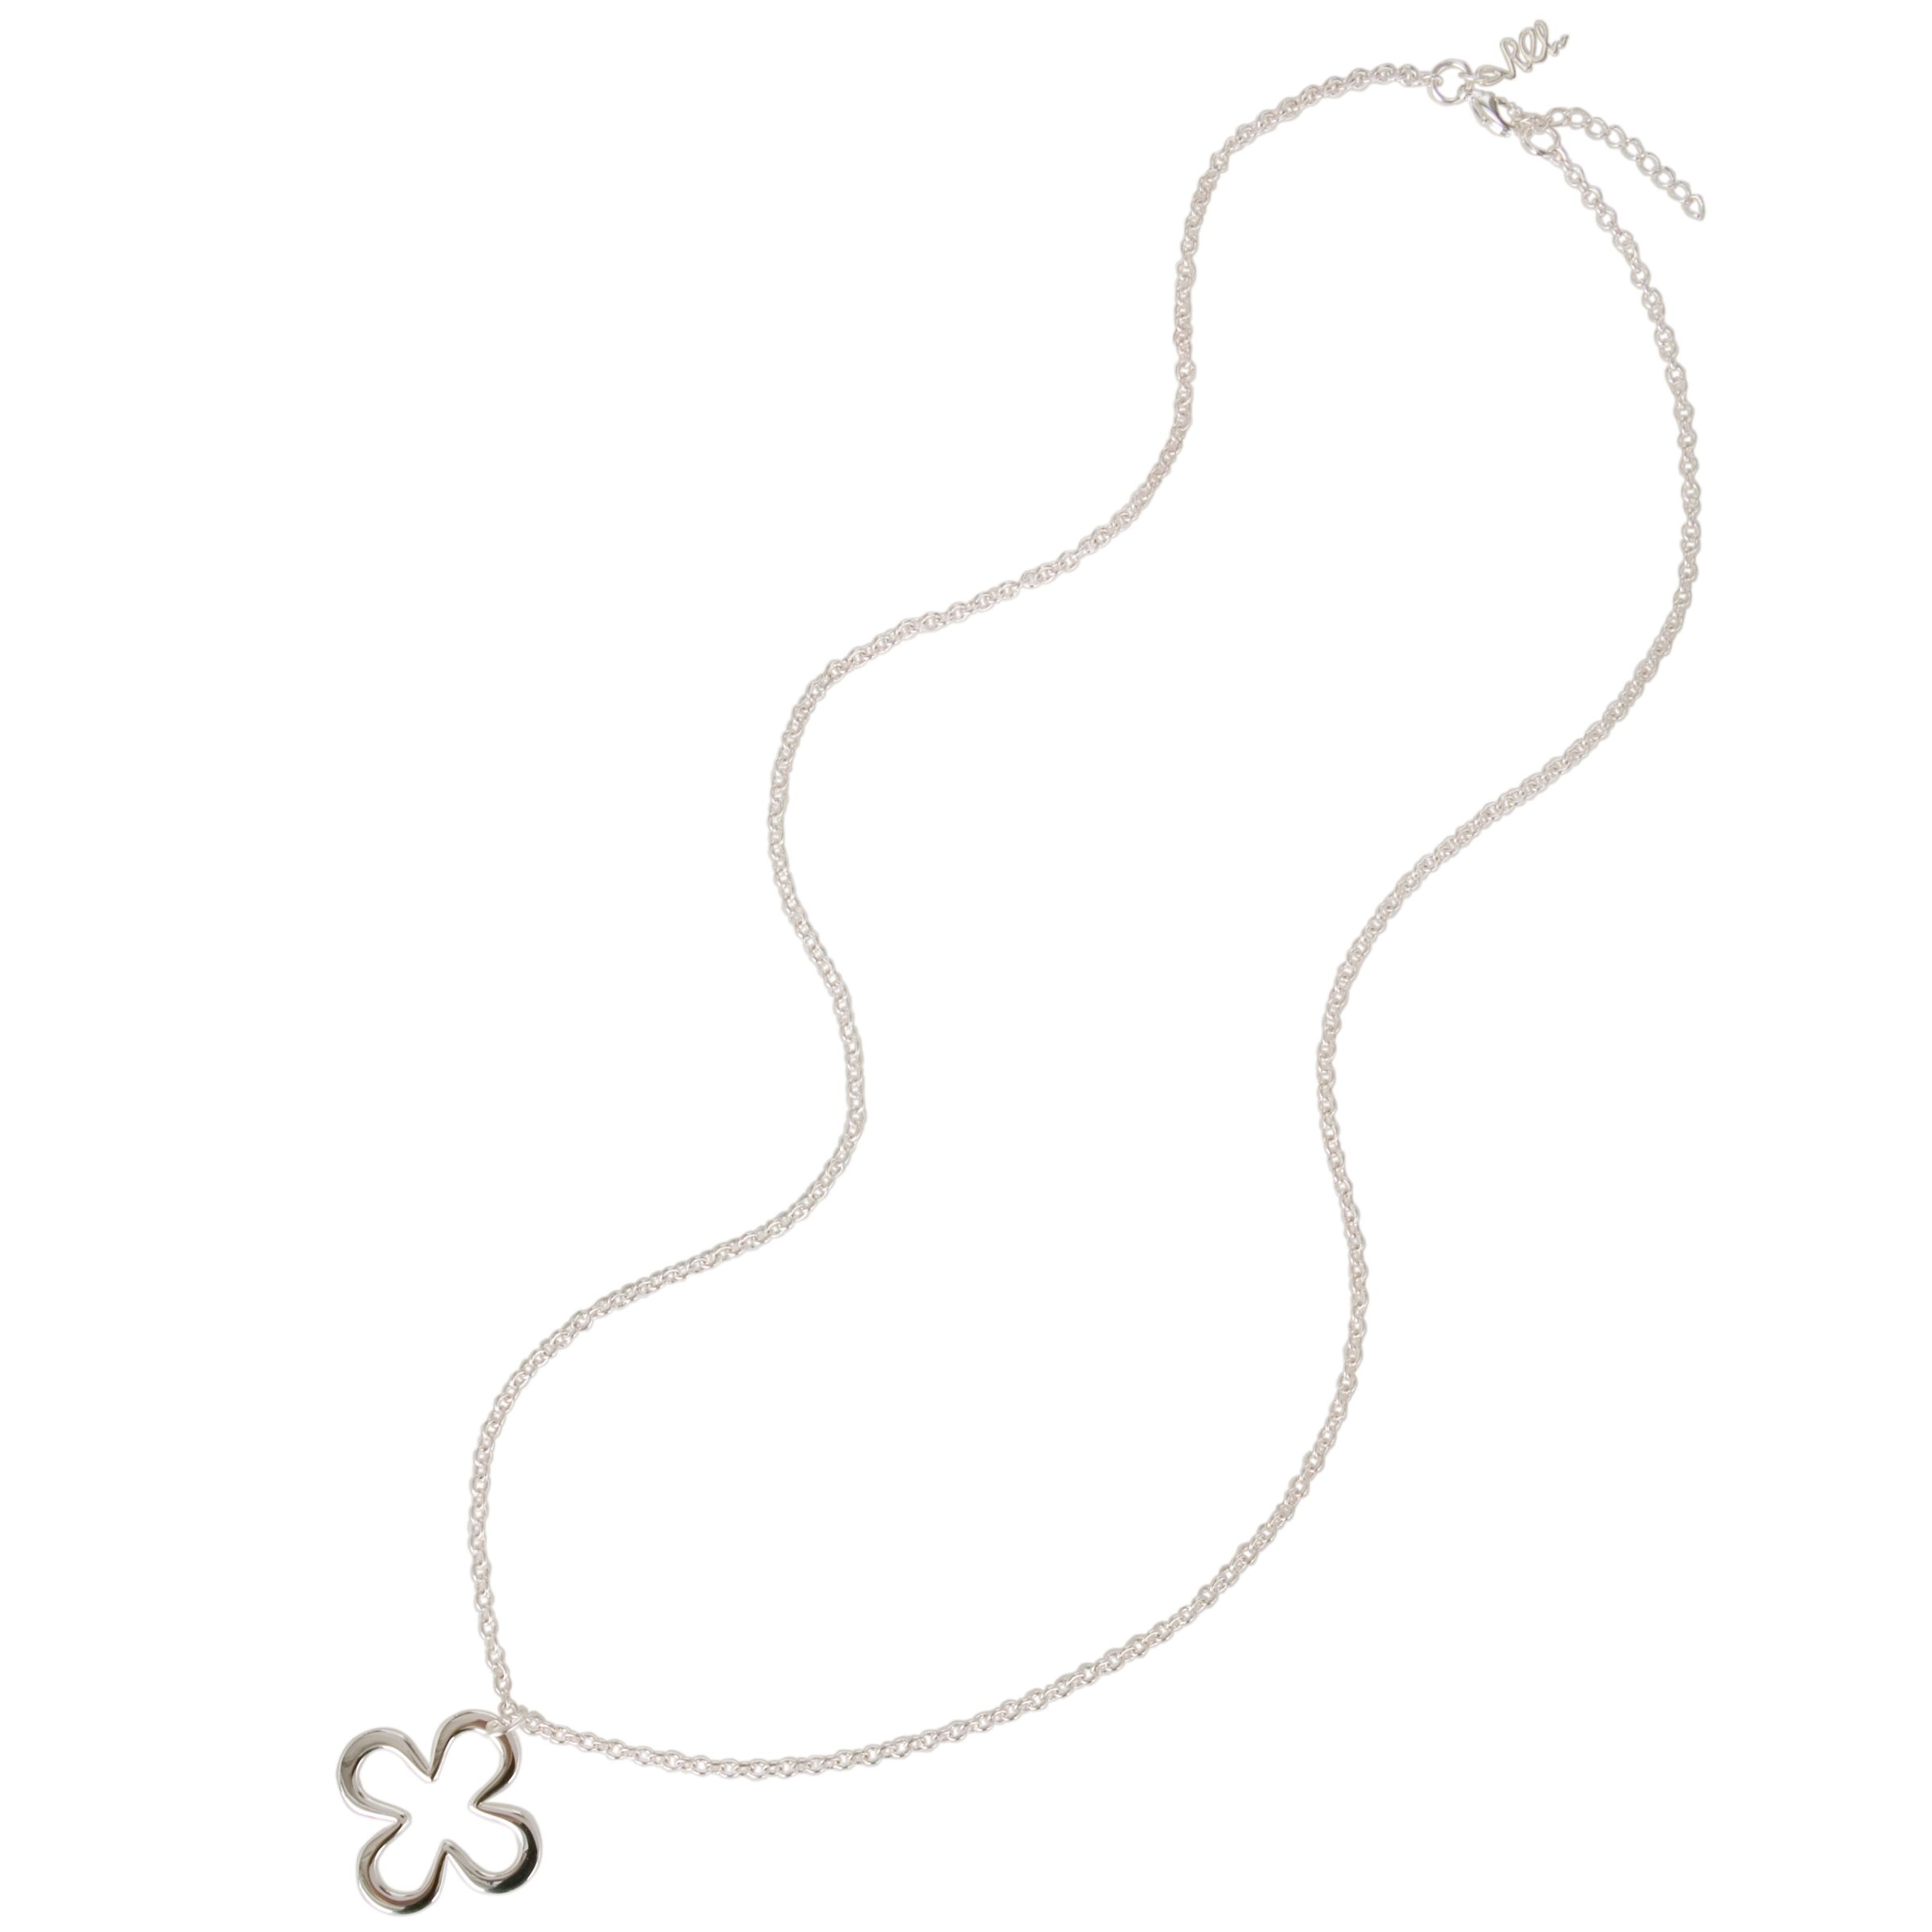 Renaissance Life Double Lucky Charm Single Necklace, Silver